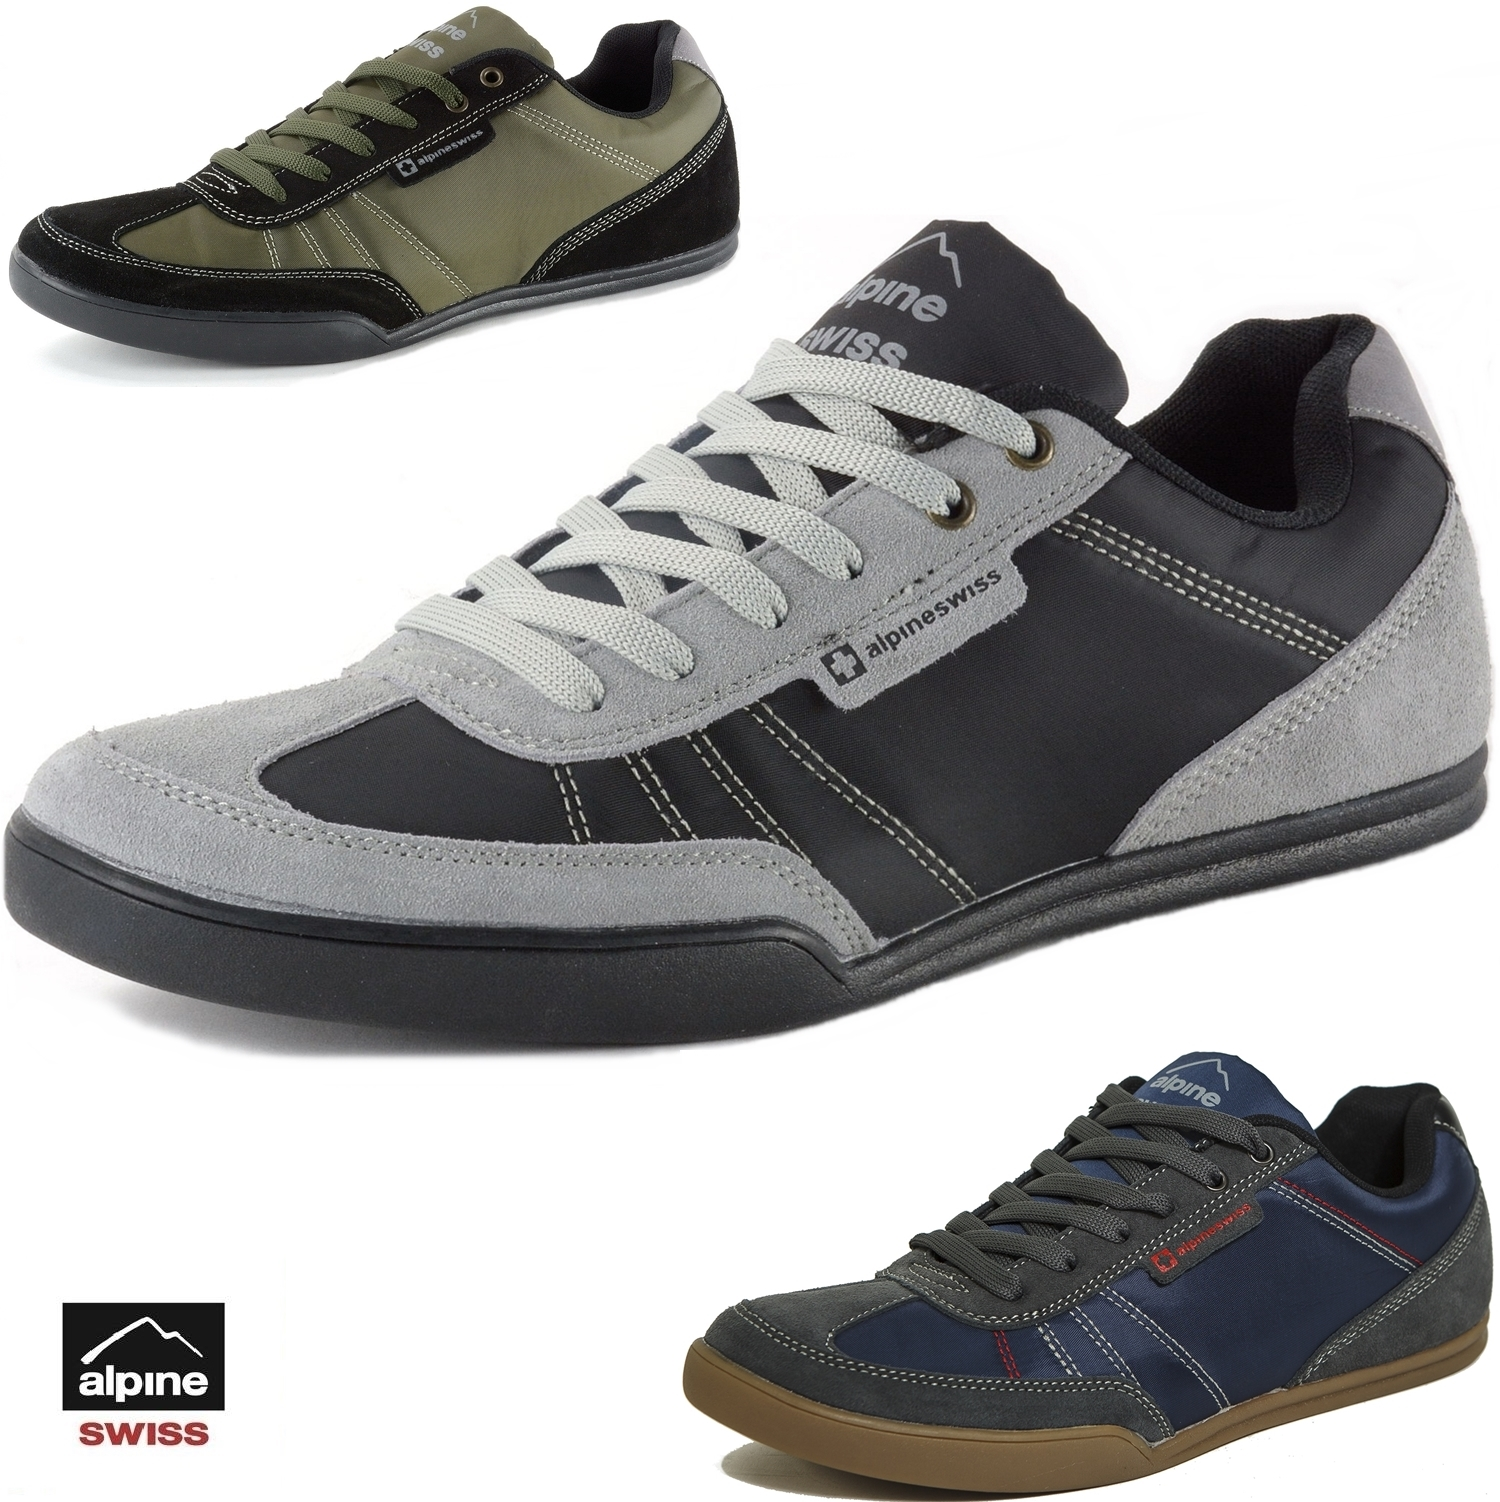 293d5ab7de57 Details about Alpine Swiss Marco Mens Casual Shoes Sporty Lace up Jean &  Sneaker Fused Hybrid